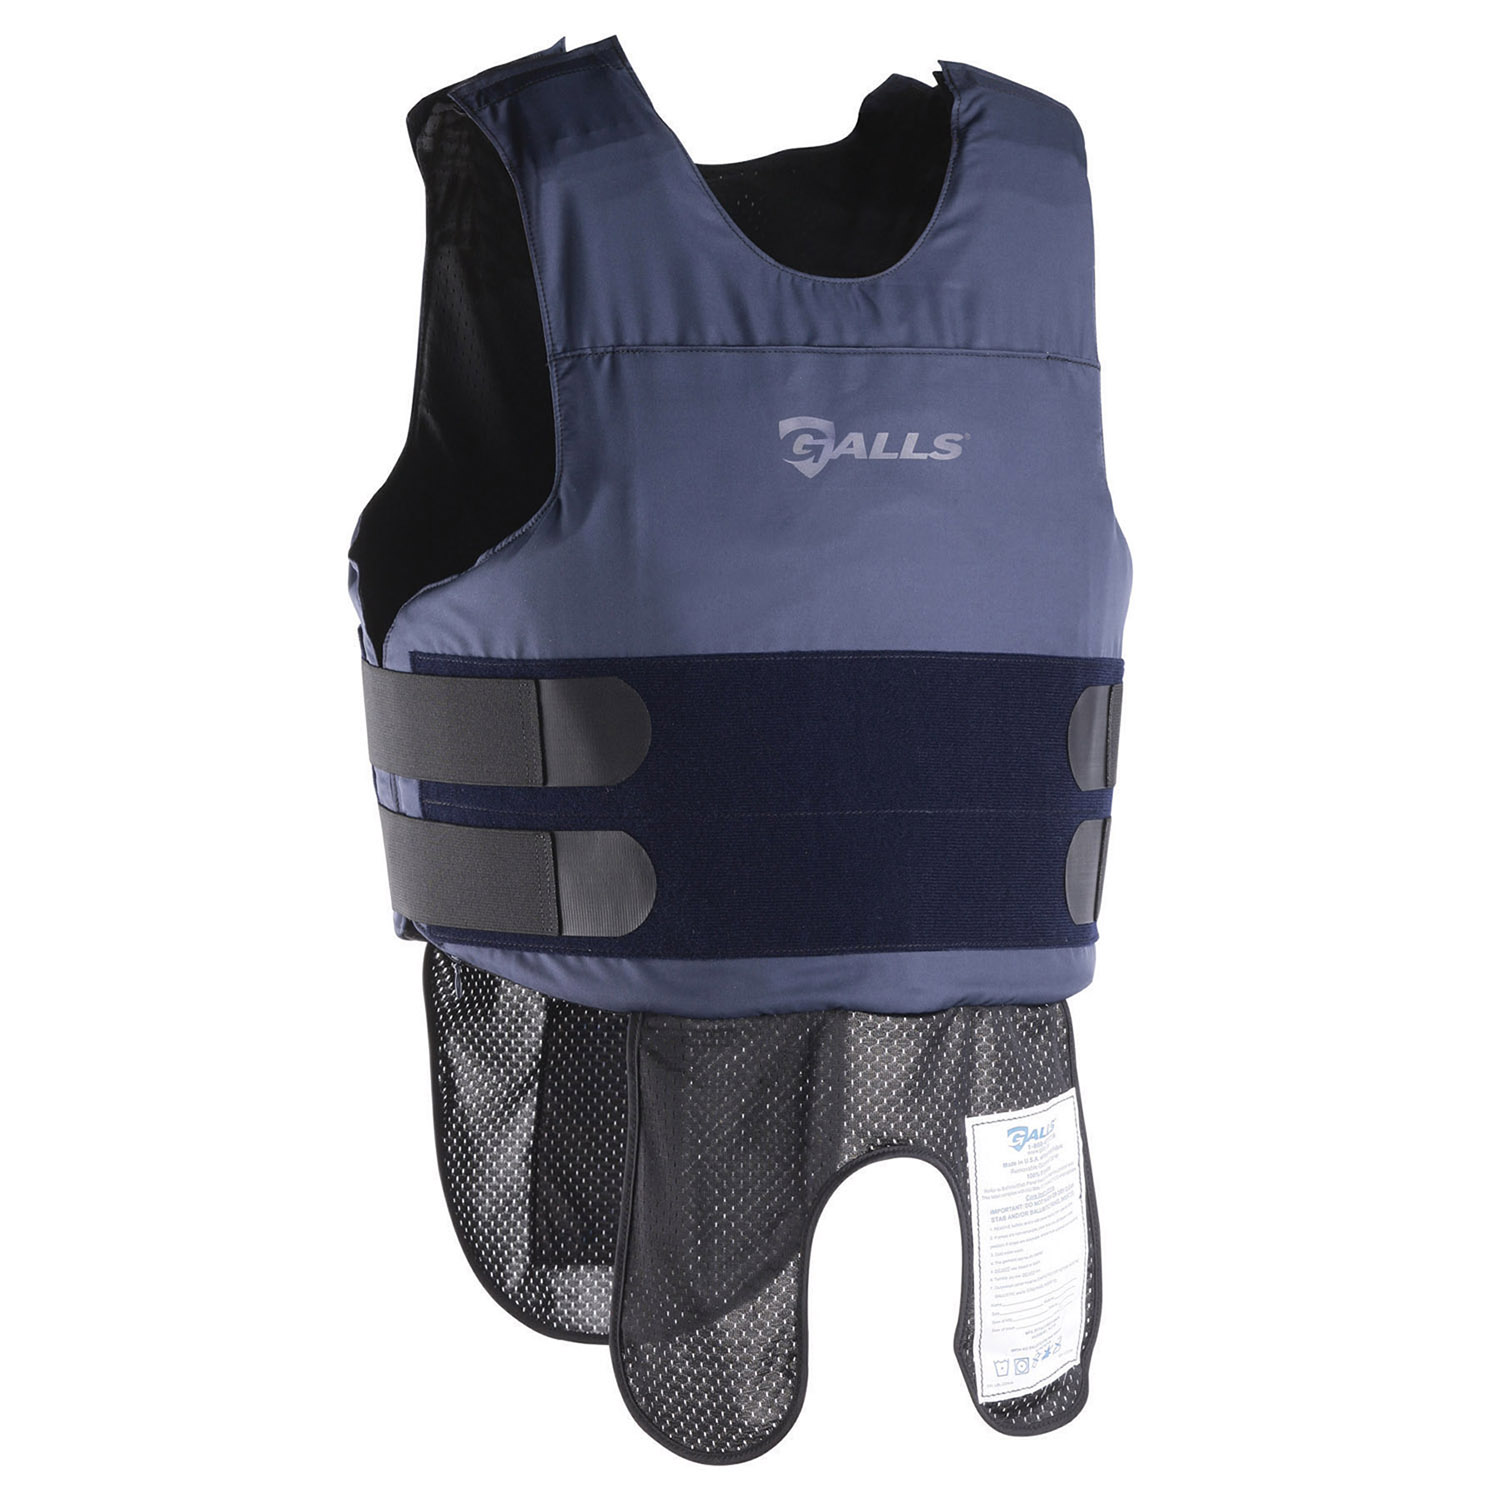 Galls GL Series II Body Armor